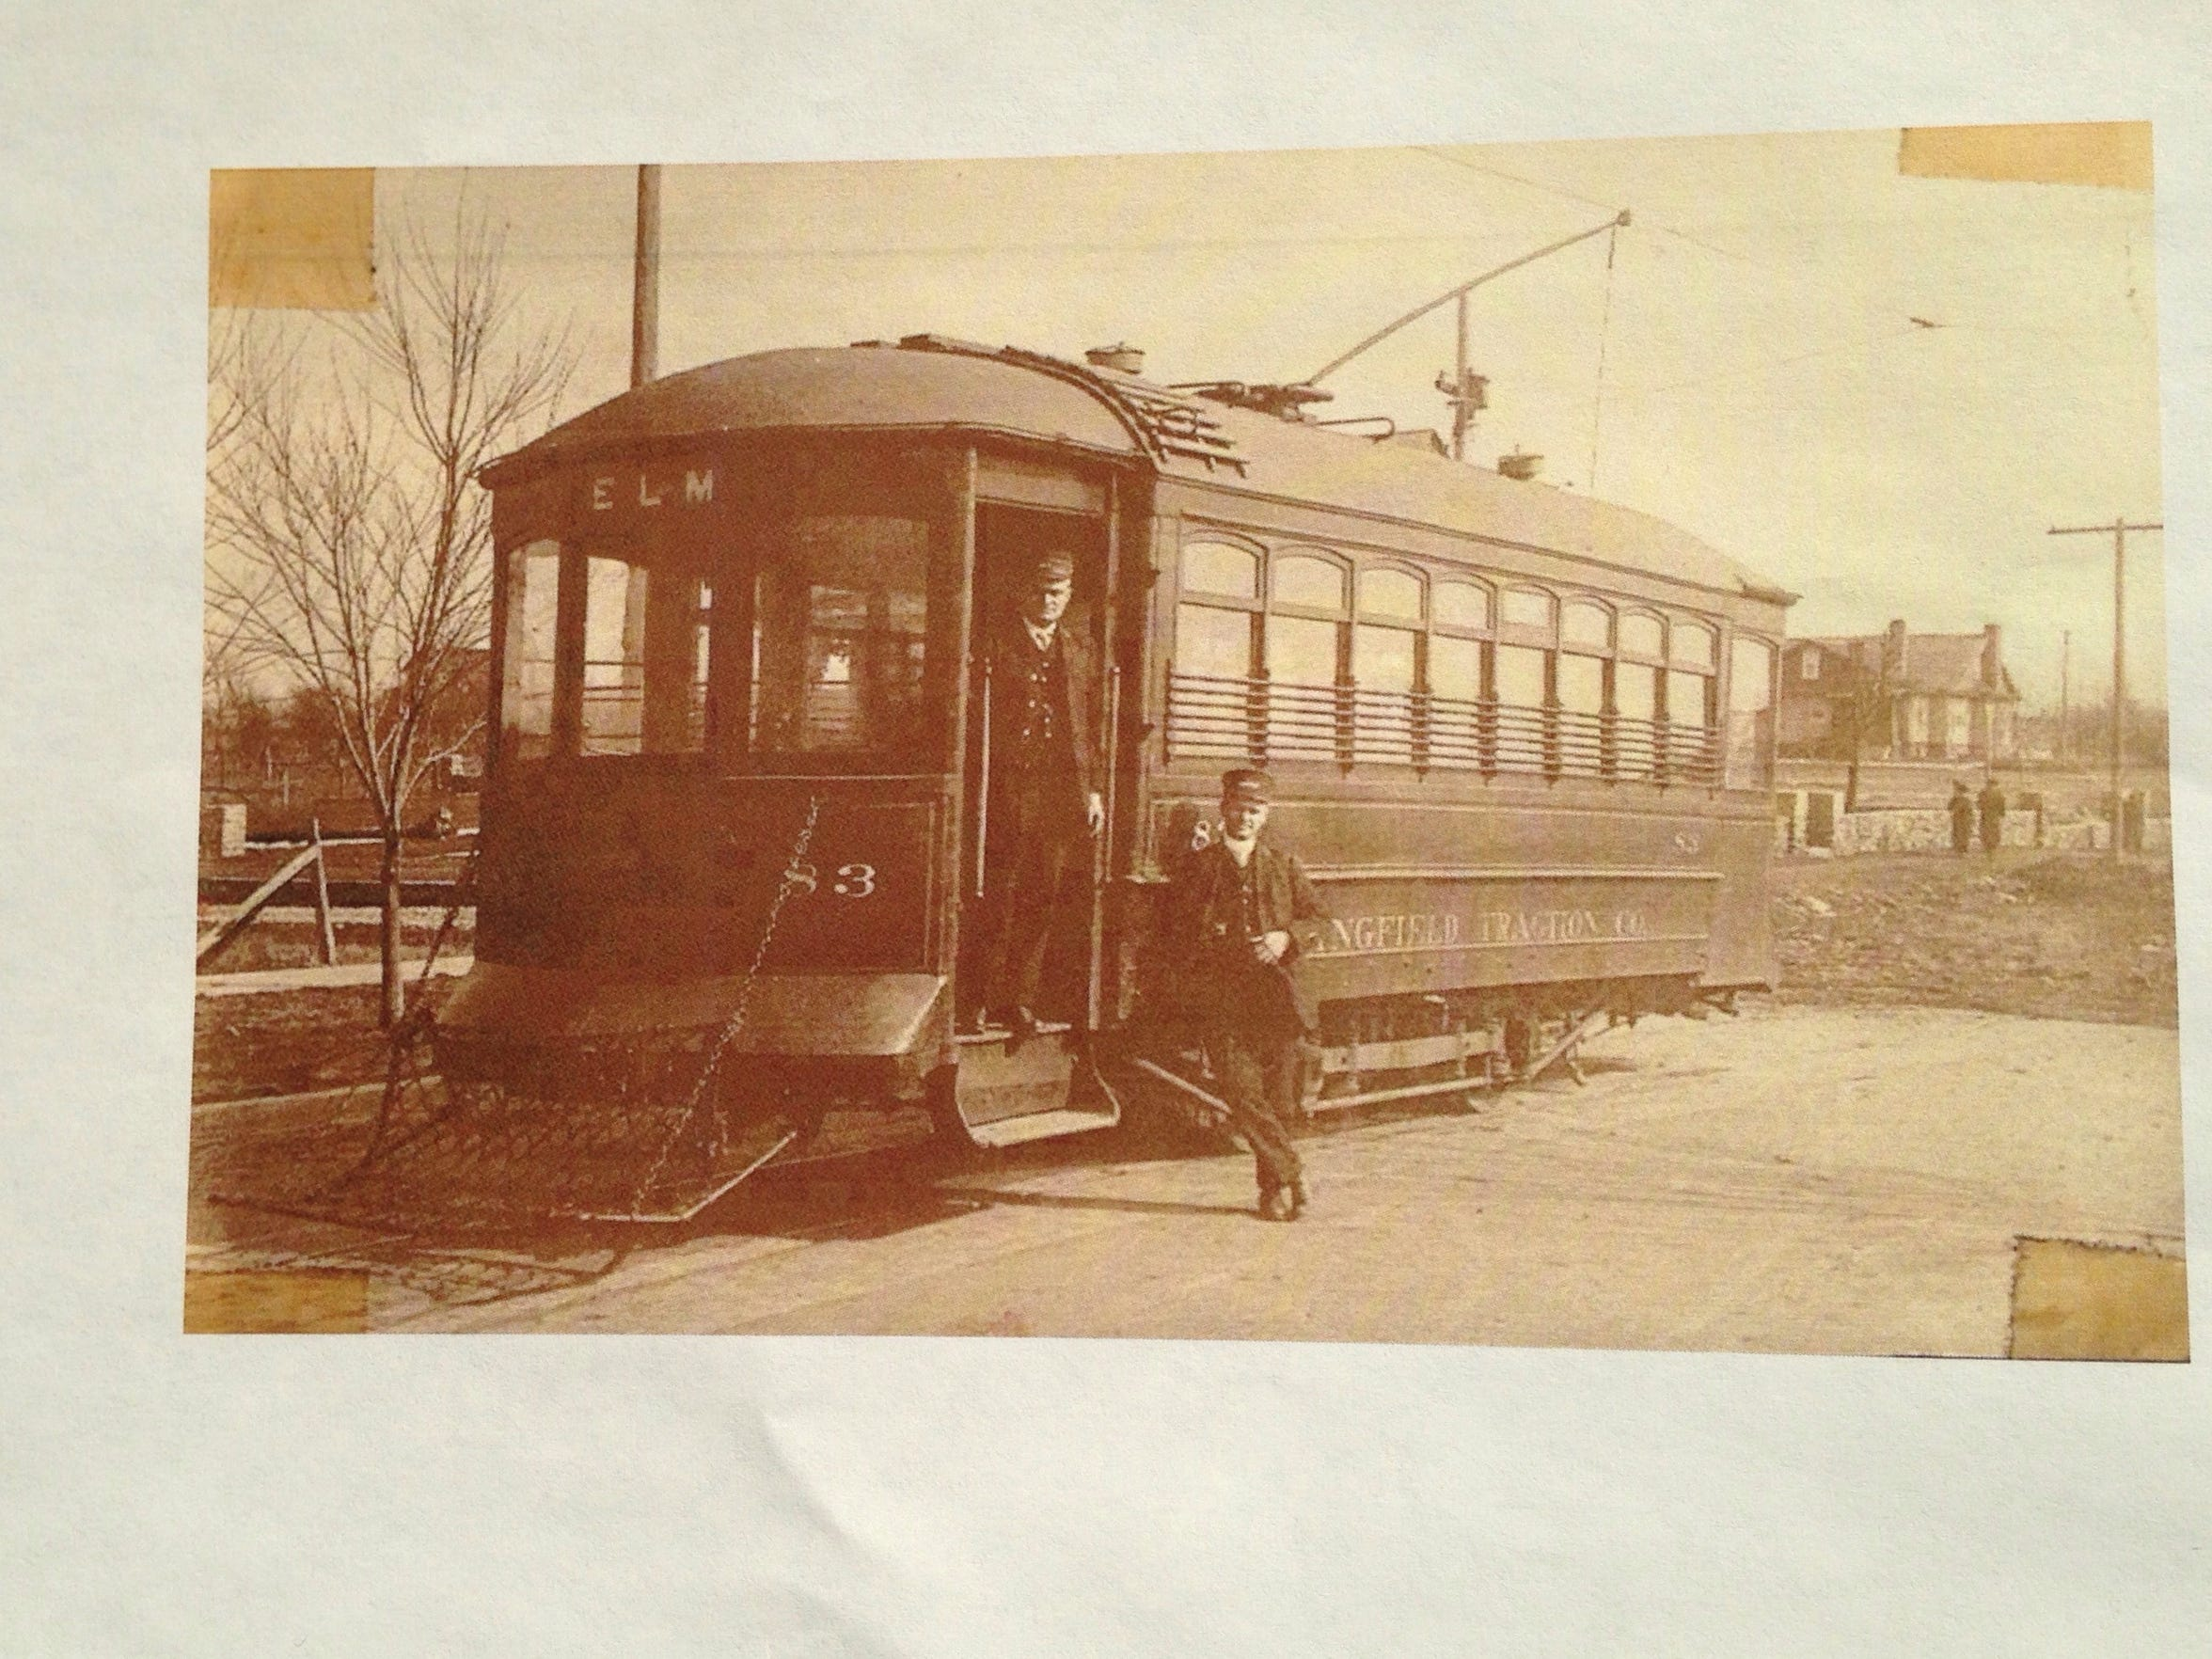 This street car is at the intersection of Pickwick